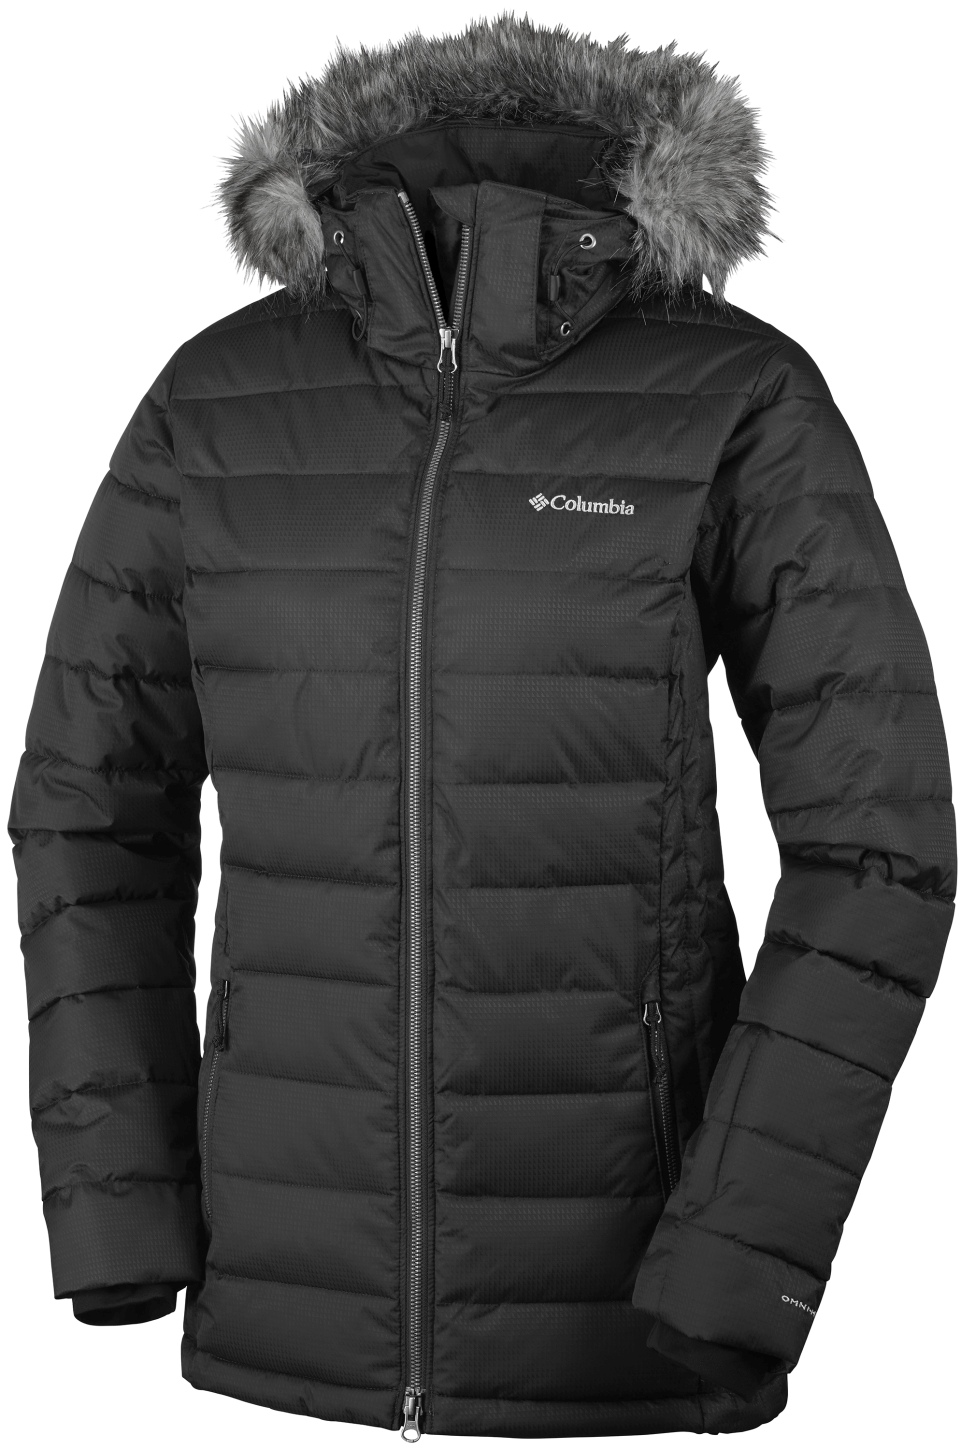 Columbia Women's Ponderay Ski Jacket Black-30